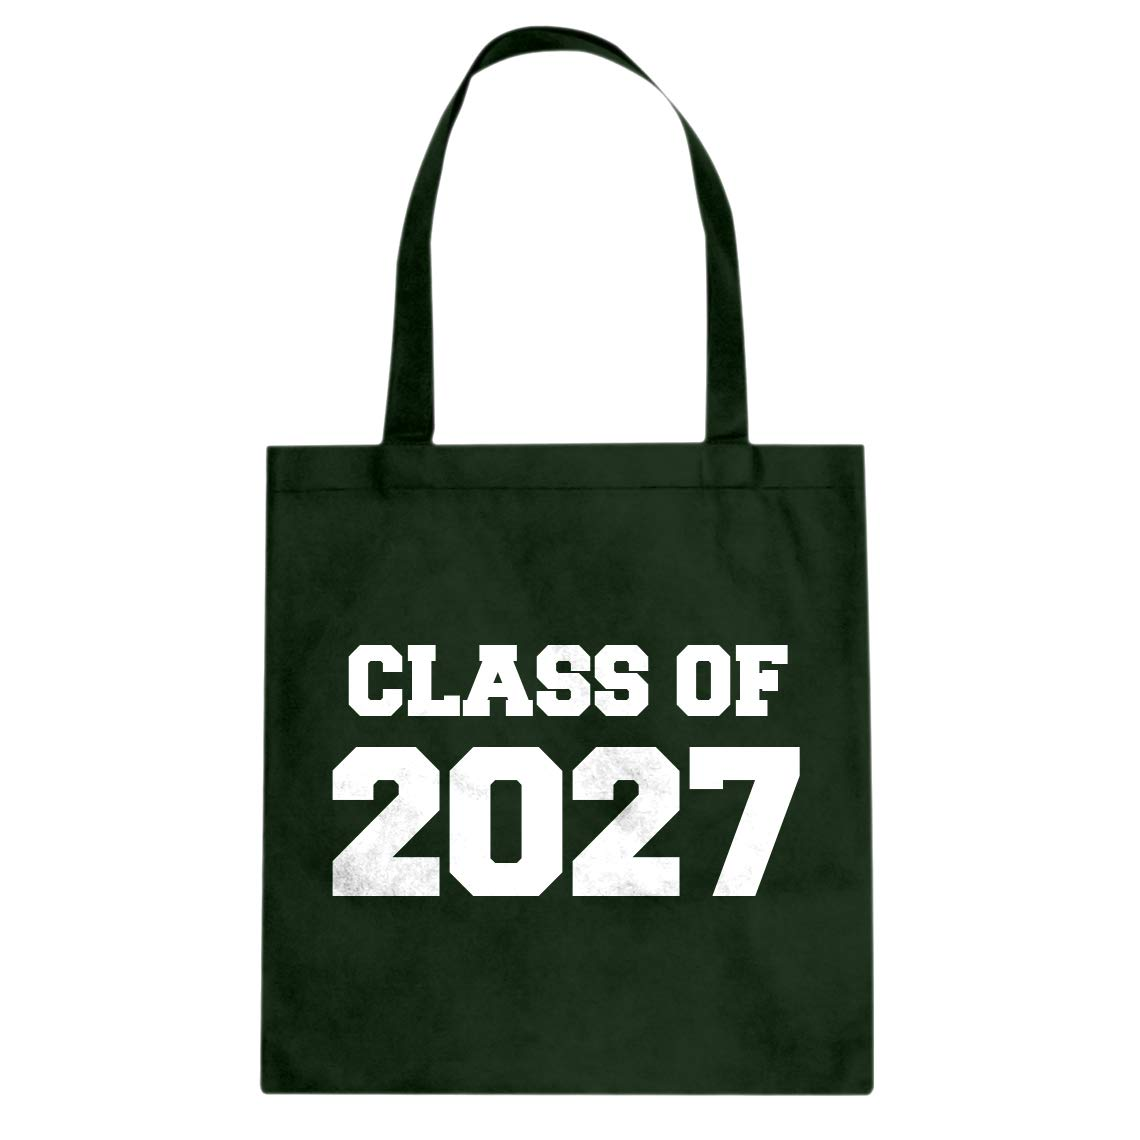 Indica Plateau Class of 2027 Cotton Canvas Tote Bag